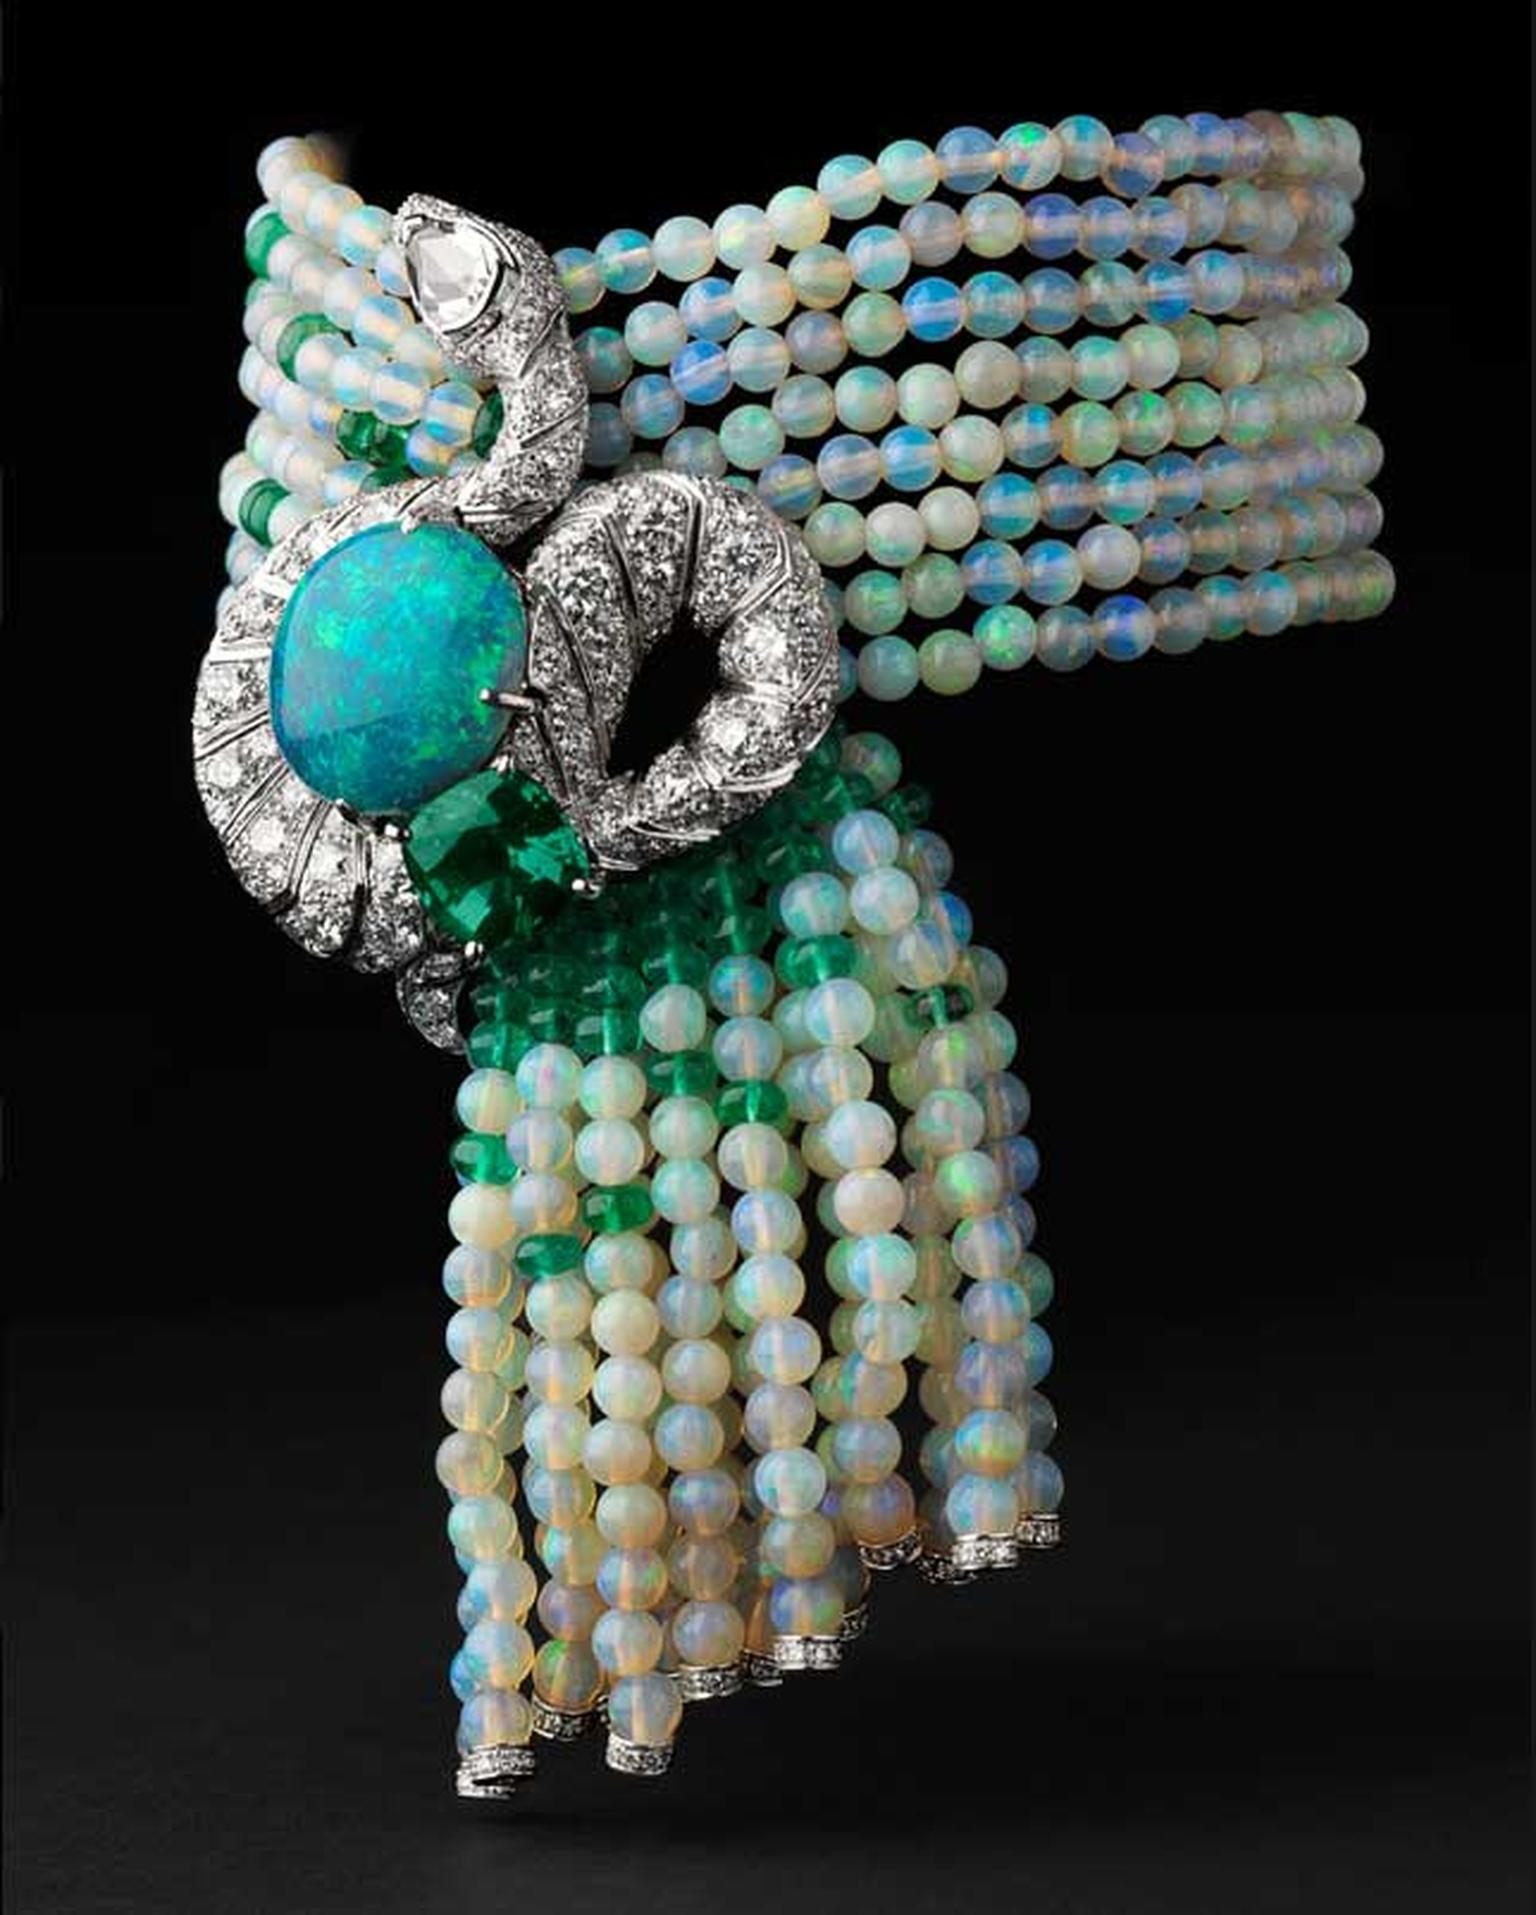 Cartier Luxuriant bracelet in platinum with one 8.02ct opal, one 3.43ct chrysoberyl, one rose-cut diamond, opal beads, emerald beads, emerald eyes and brilliant diamonds